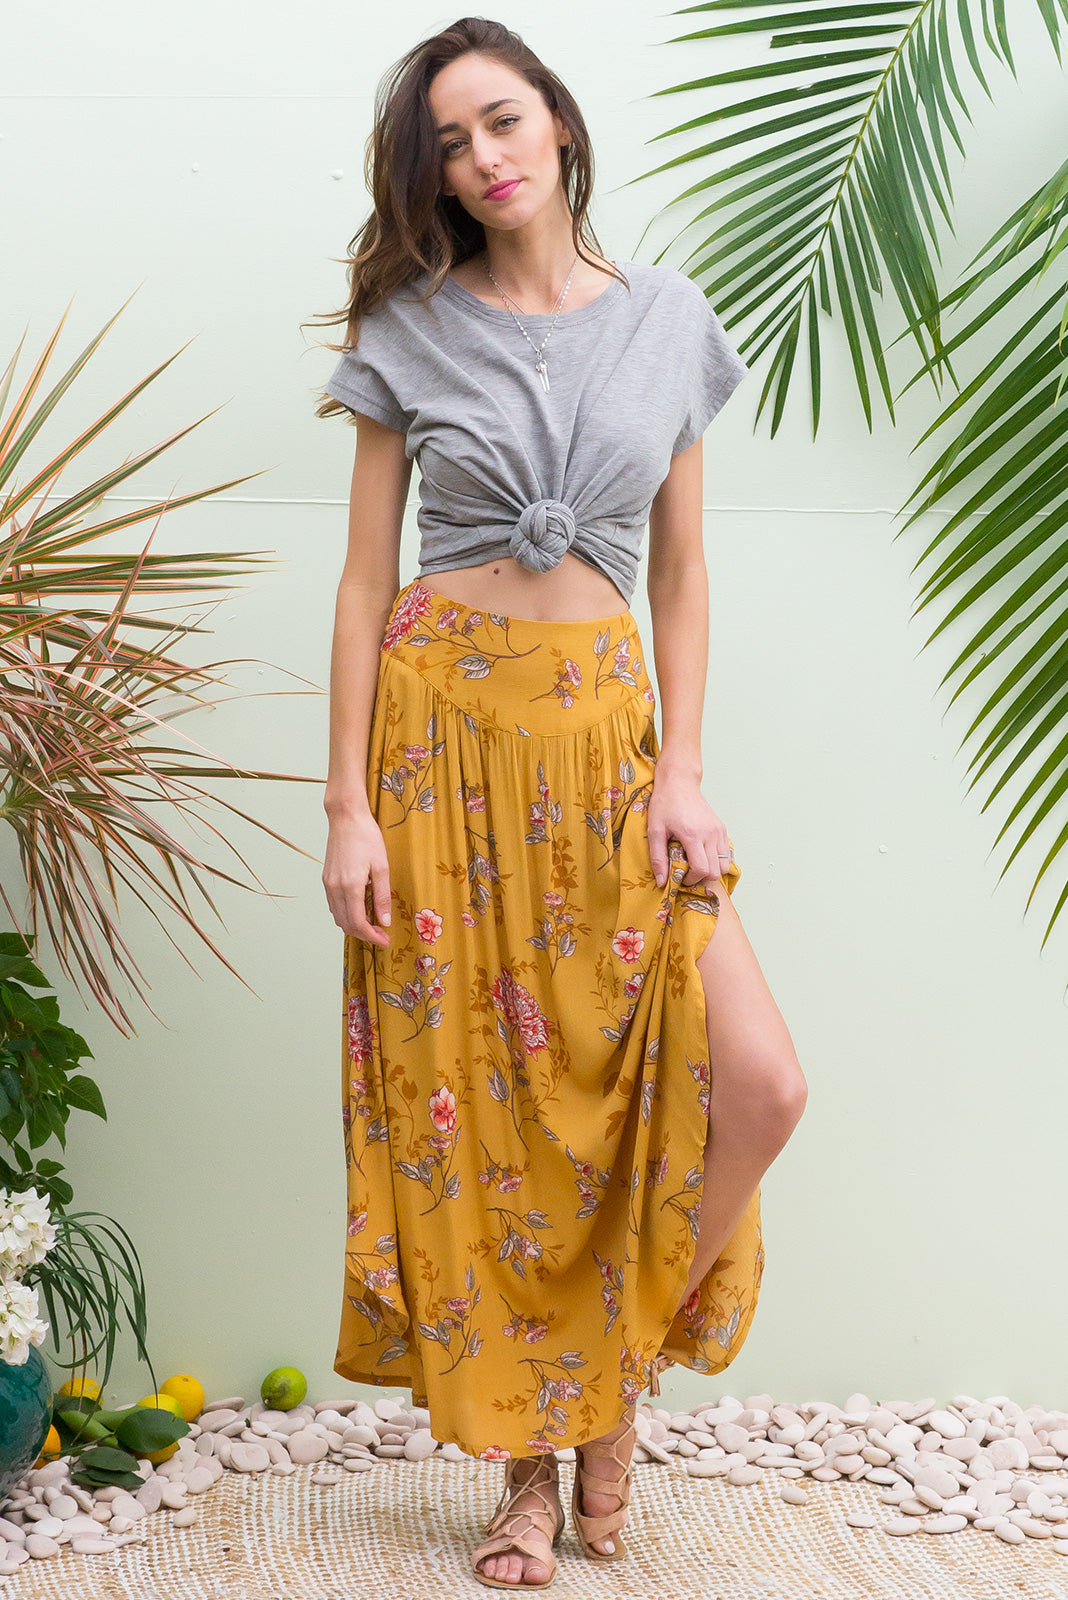 Laguna Golden Maxi Skirt with a soft ruched elastic back and pockets in rich golden yellow with a tonal floral bohemian vintage style print on crinkle rayon